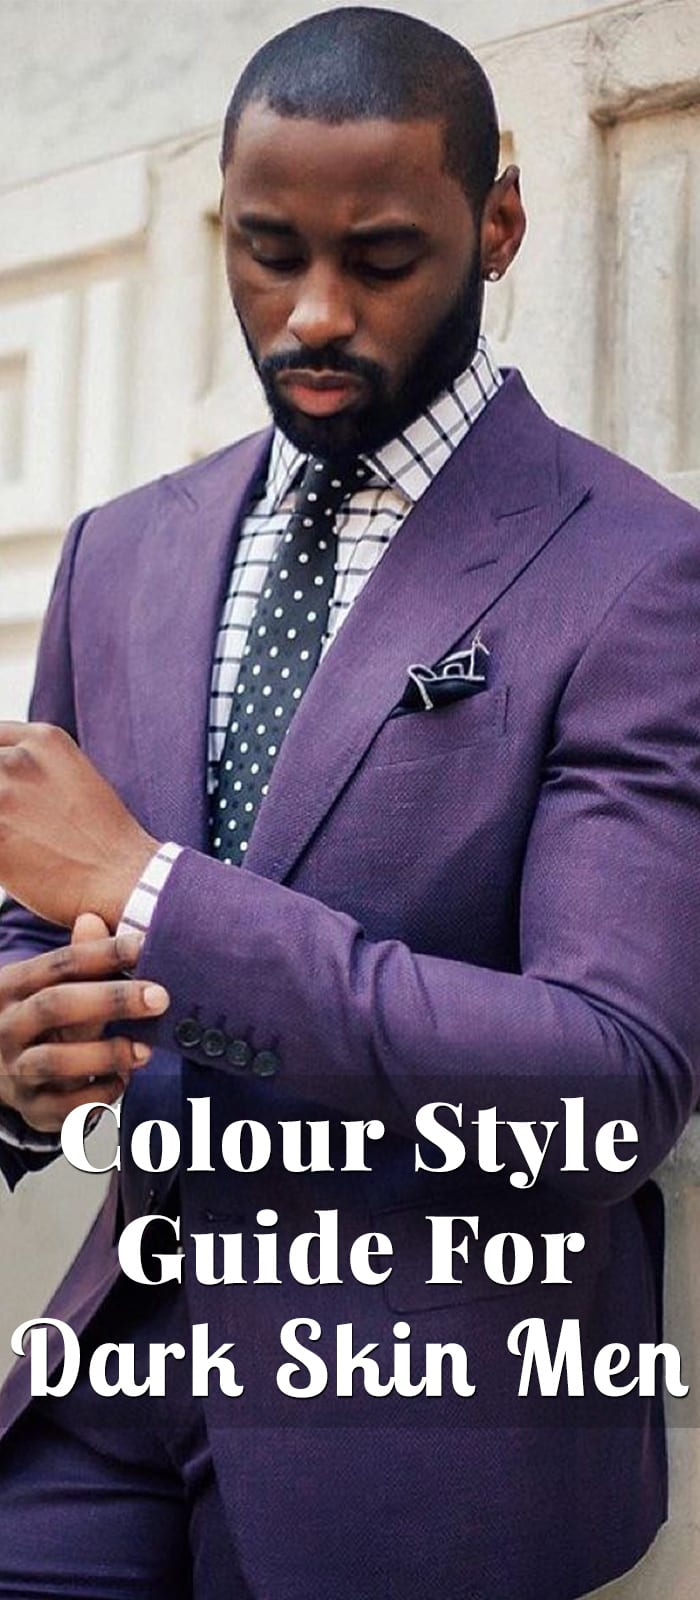 Colour Style Guide For Dark Skin Men